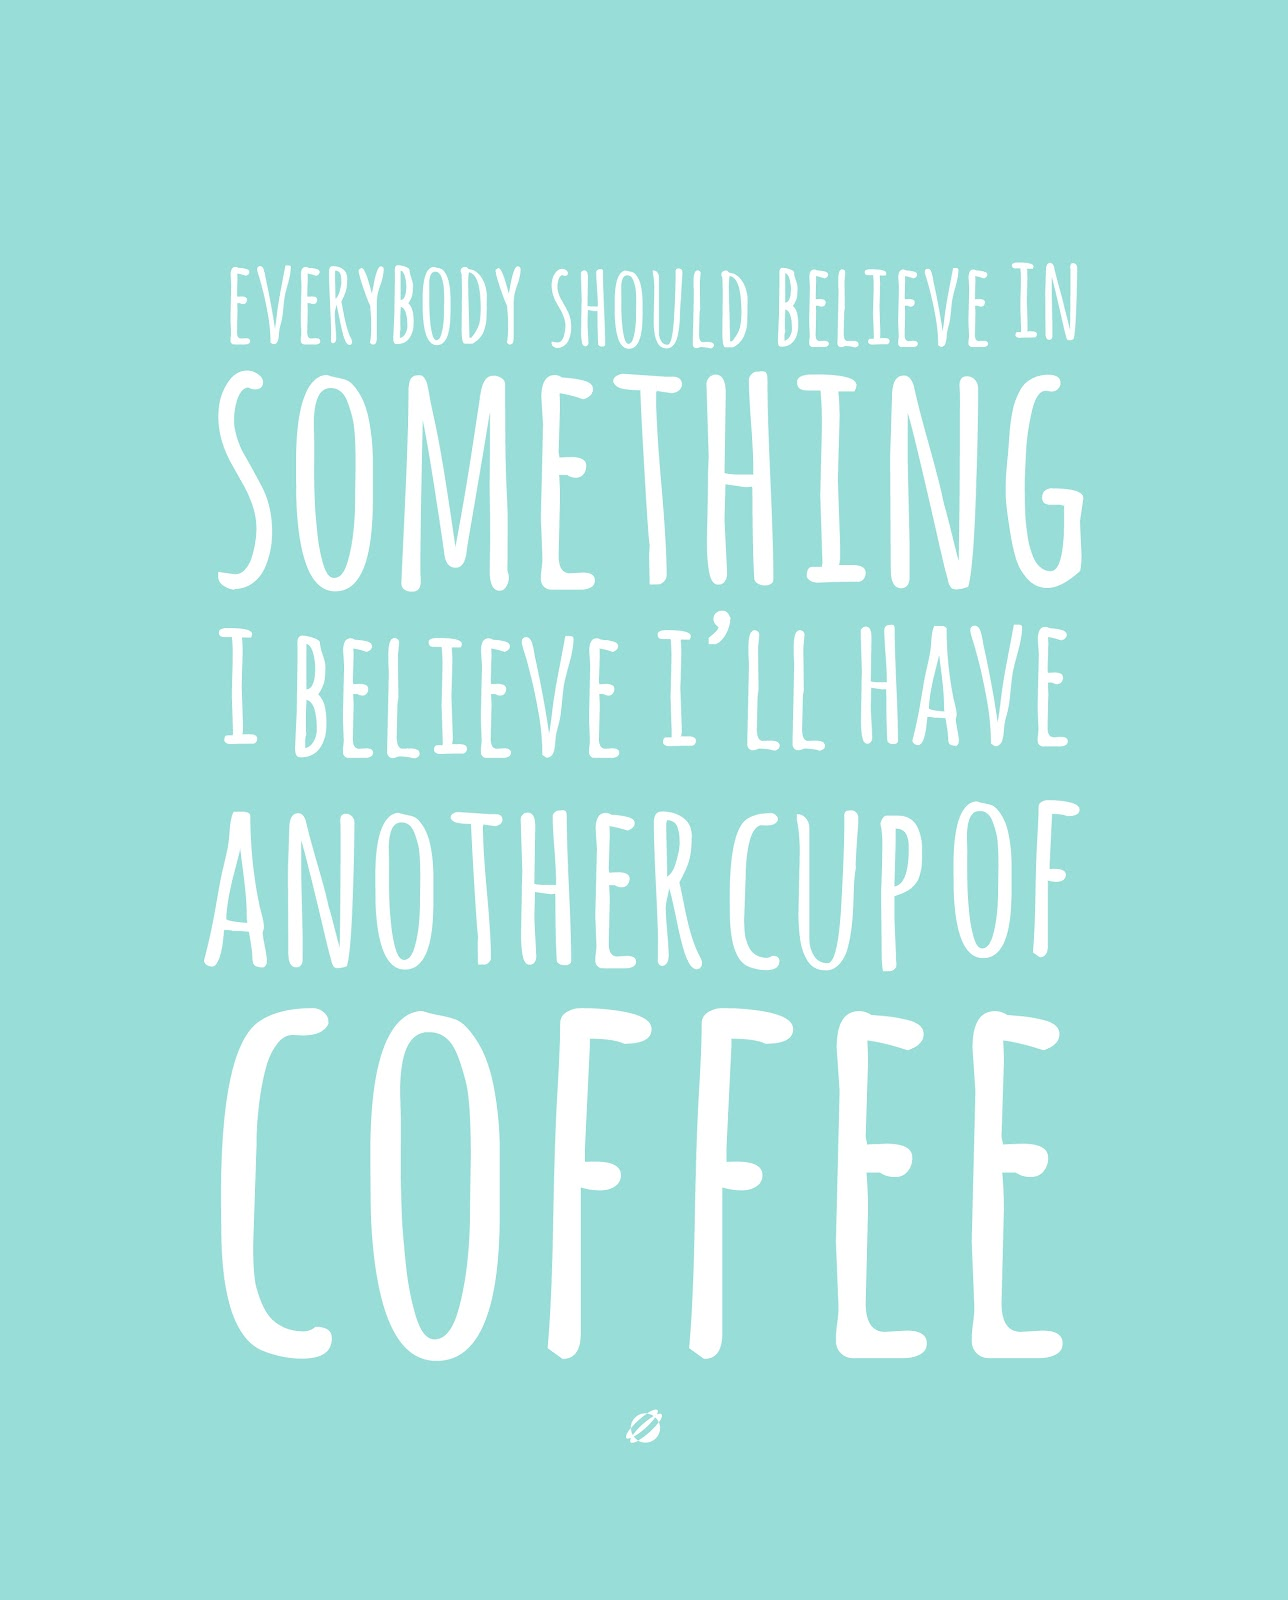 LostBumblebee ©2014 Coffee Believe - Free Printable